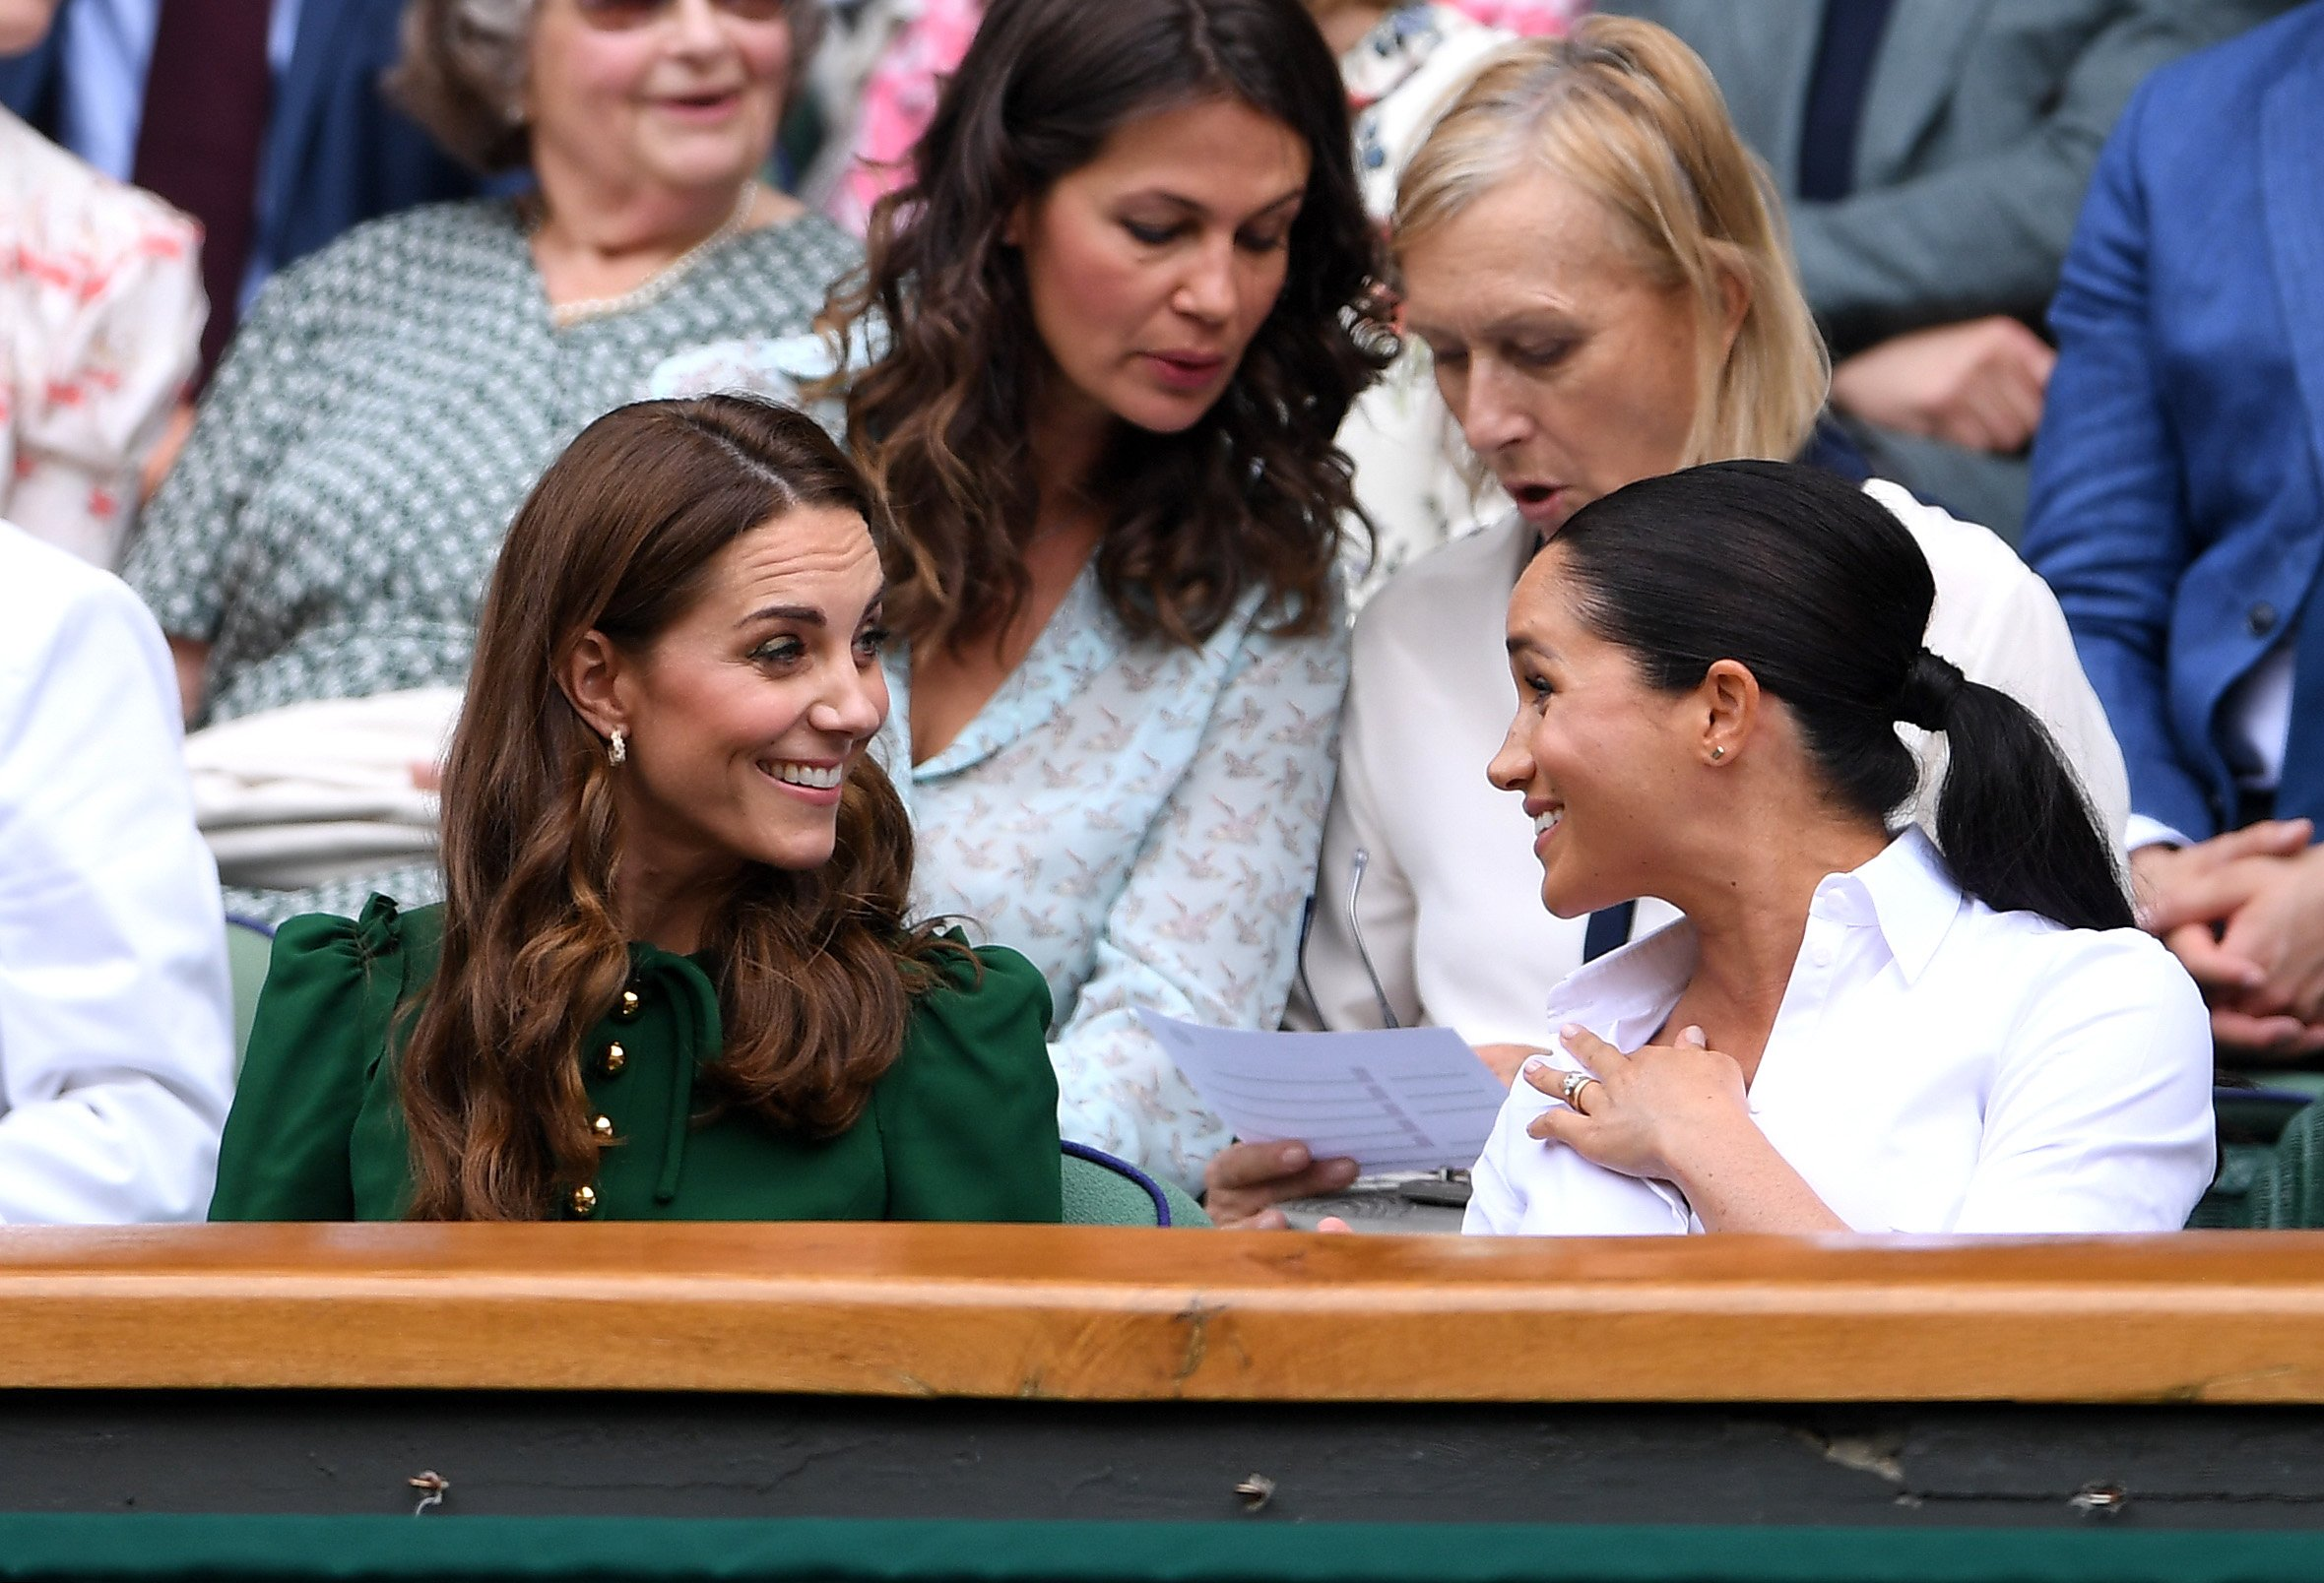 Kate Middleton und Meghan Markle, Wimbledon 2019 | Quelle: Getty Images